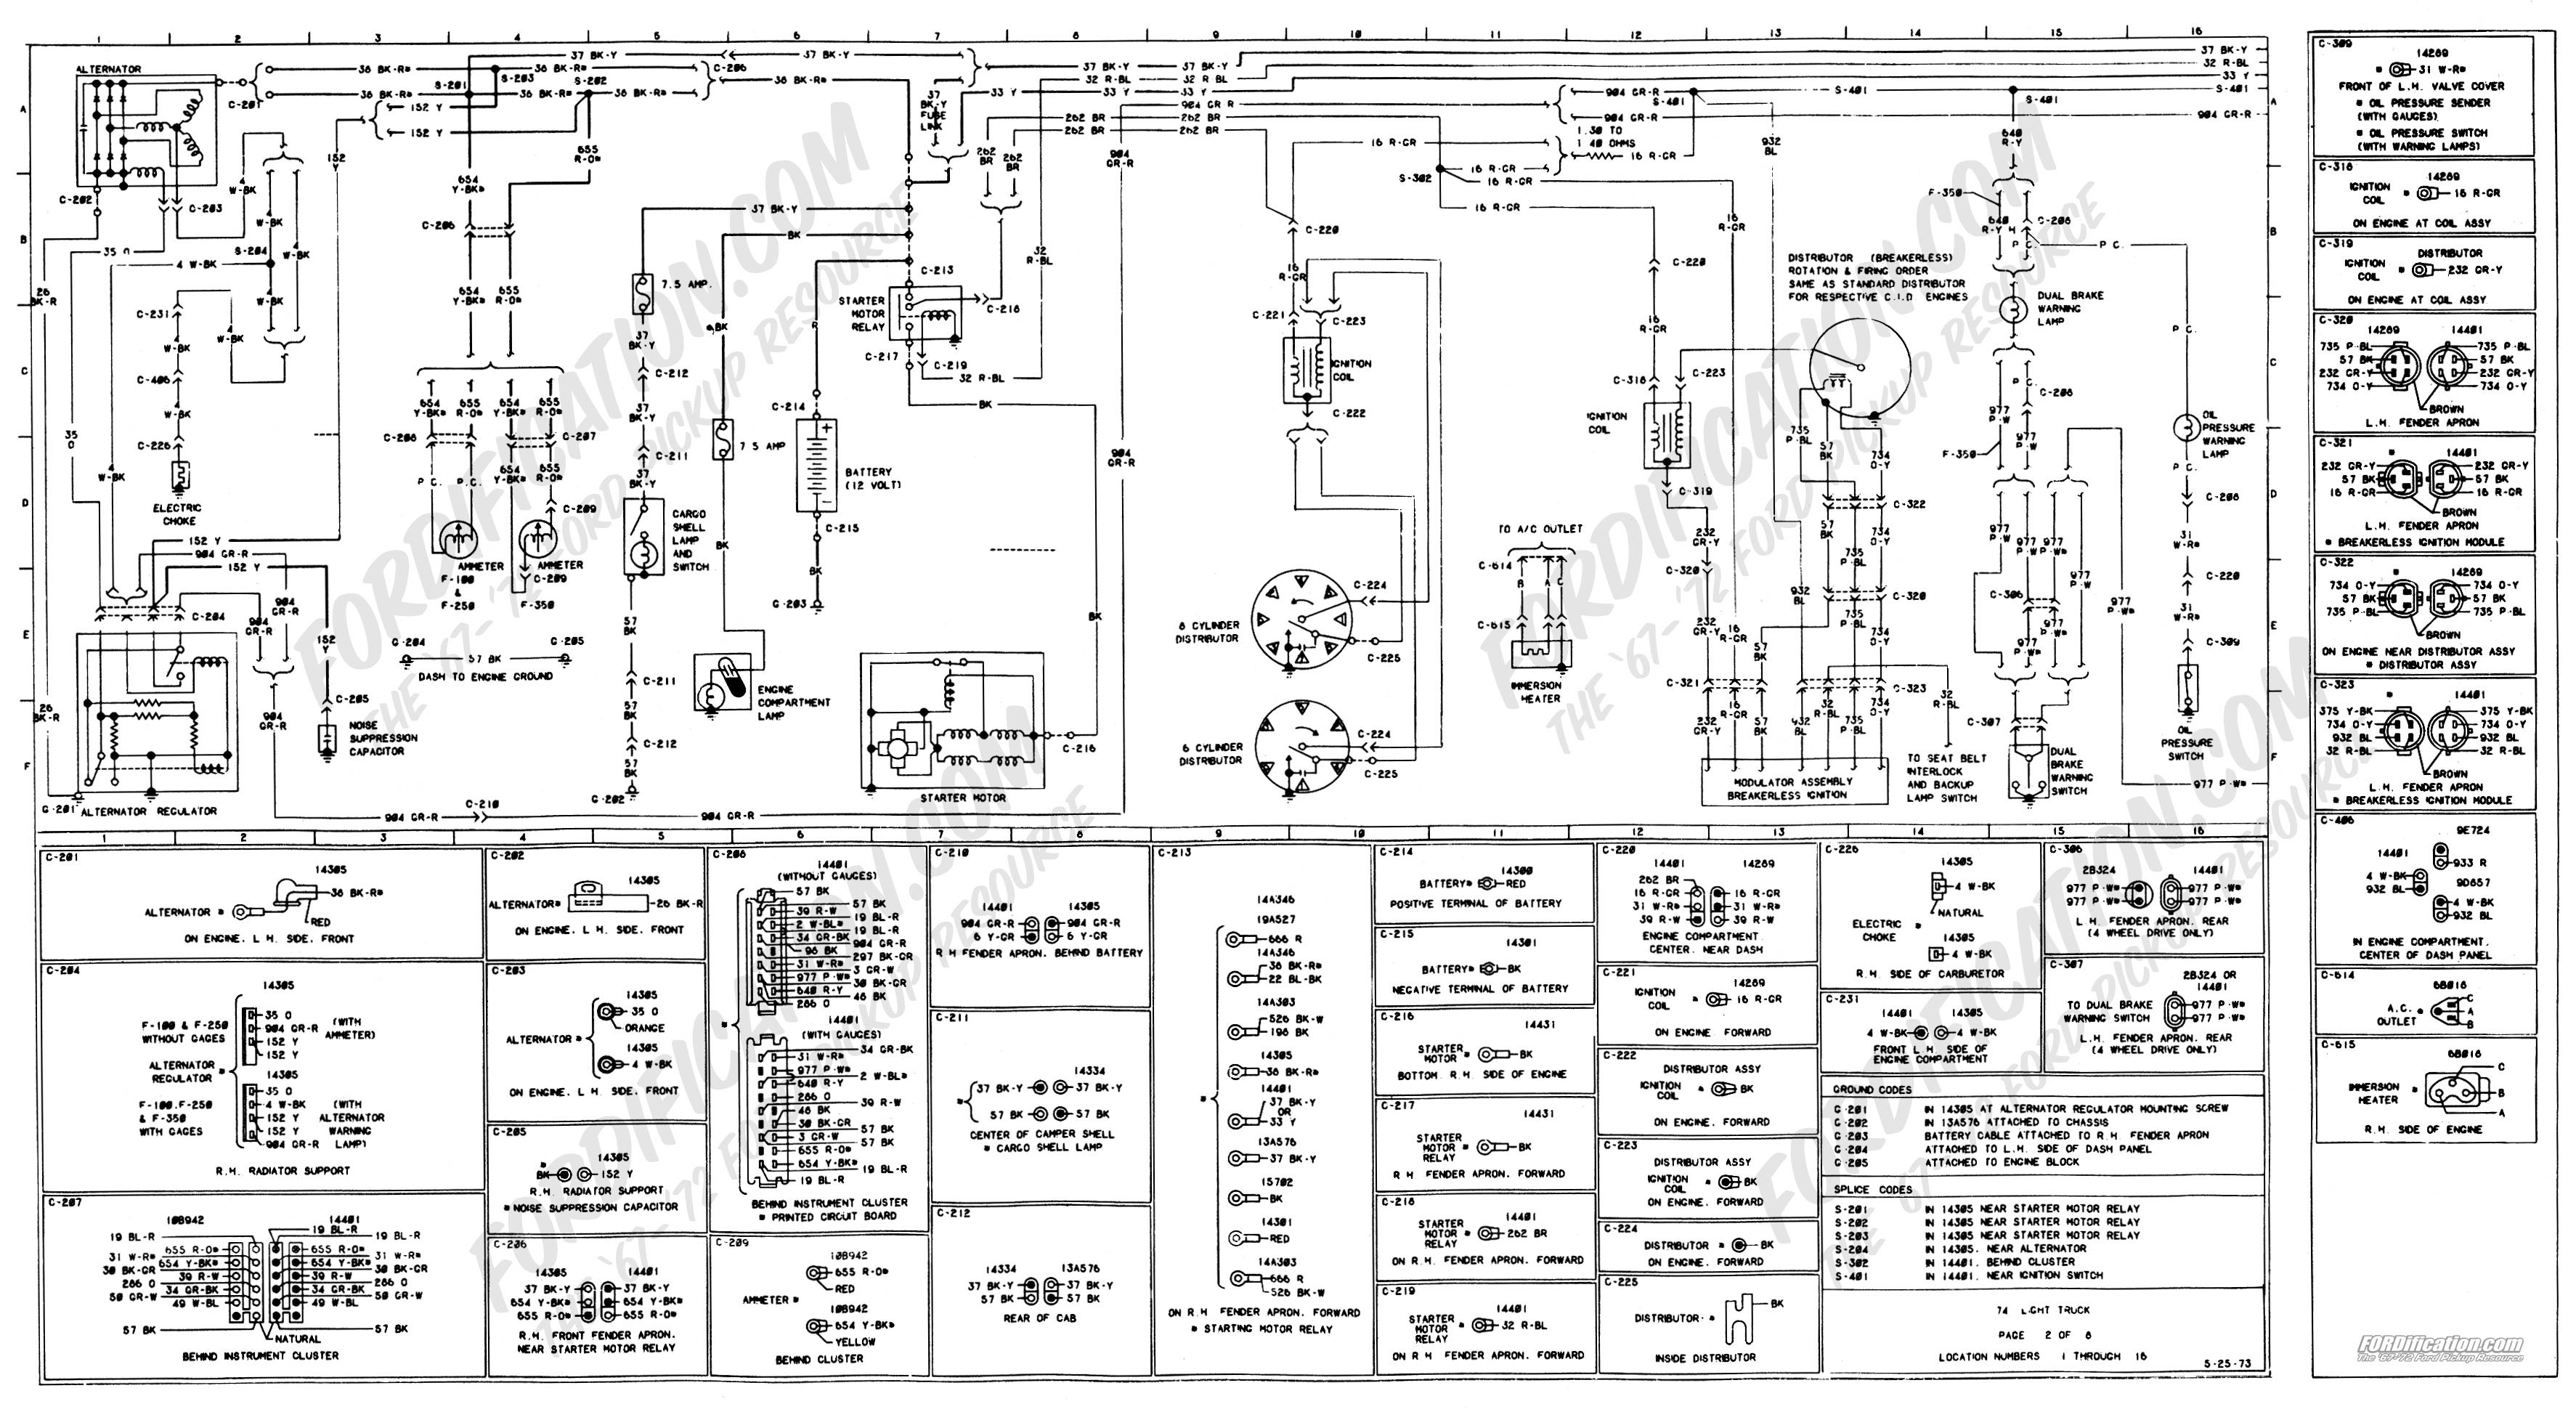 wiring diagram for sterling trucks get wiring diagram acetera 2001 sterling truck fuse box